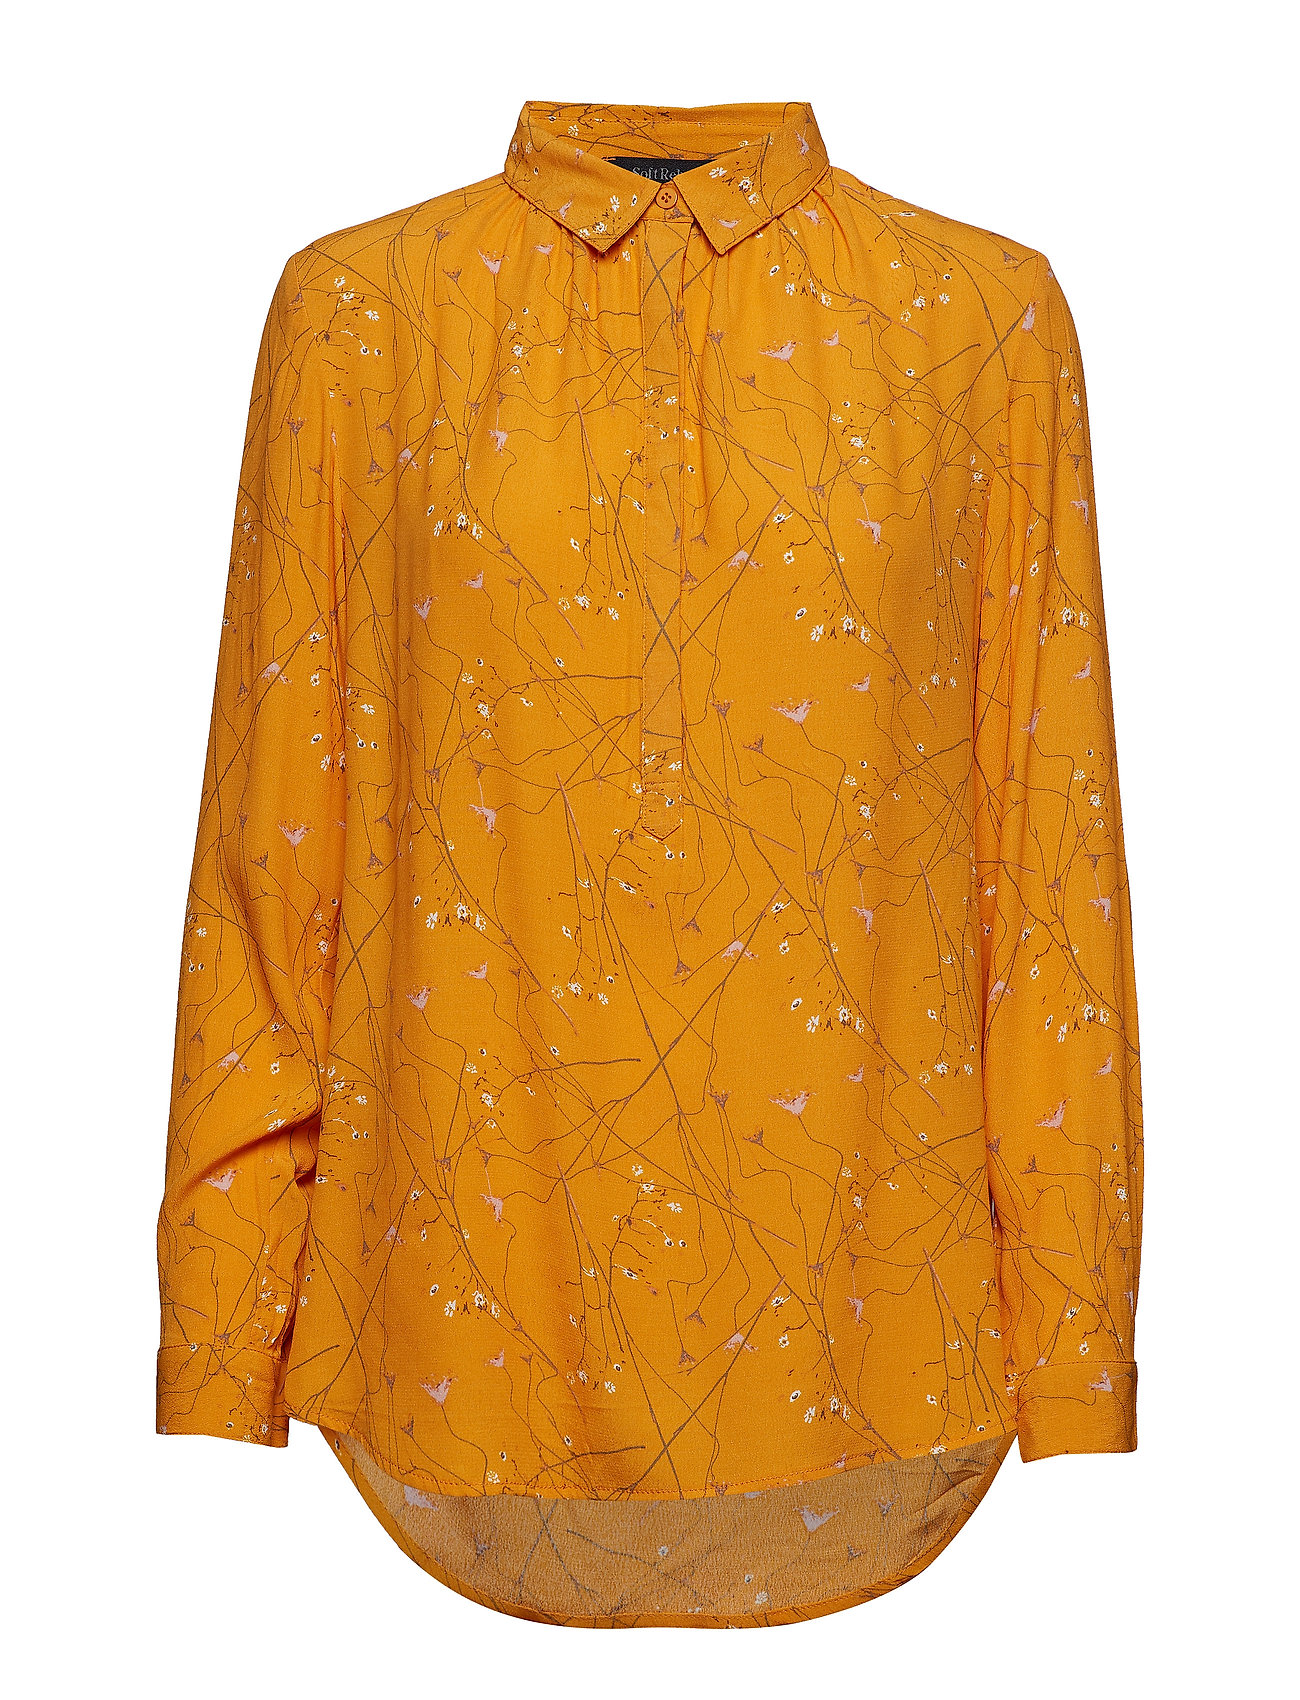 Soft Rebels Stilks Shirt Blouse - STILKS PRINT